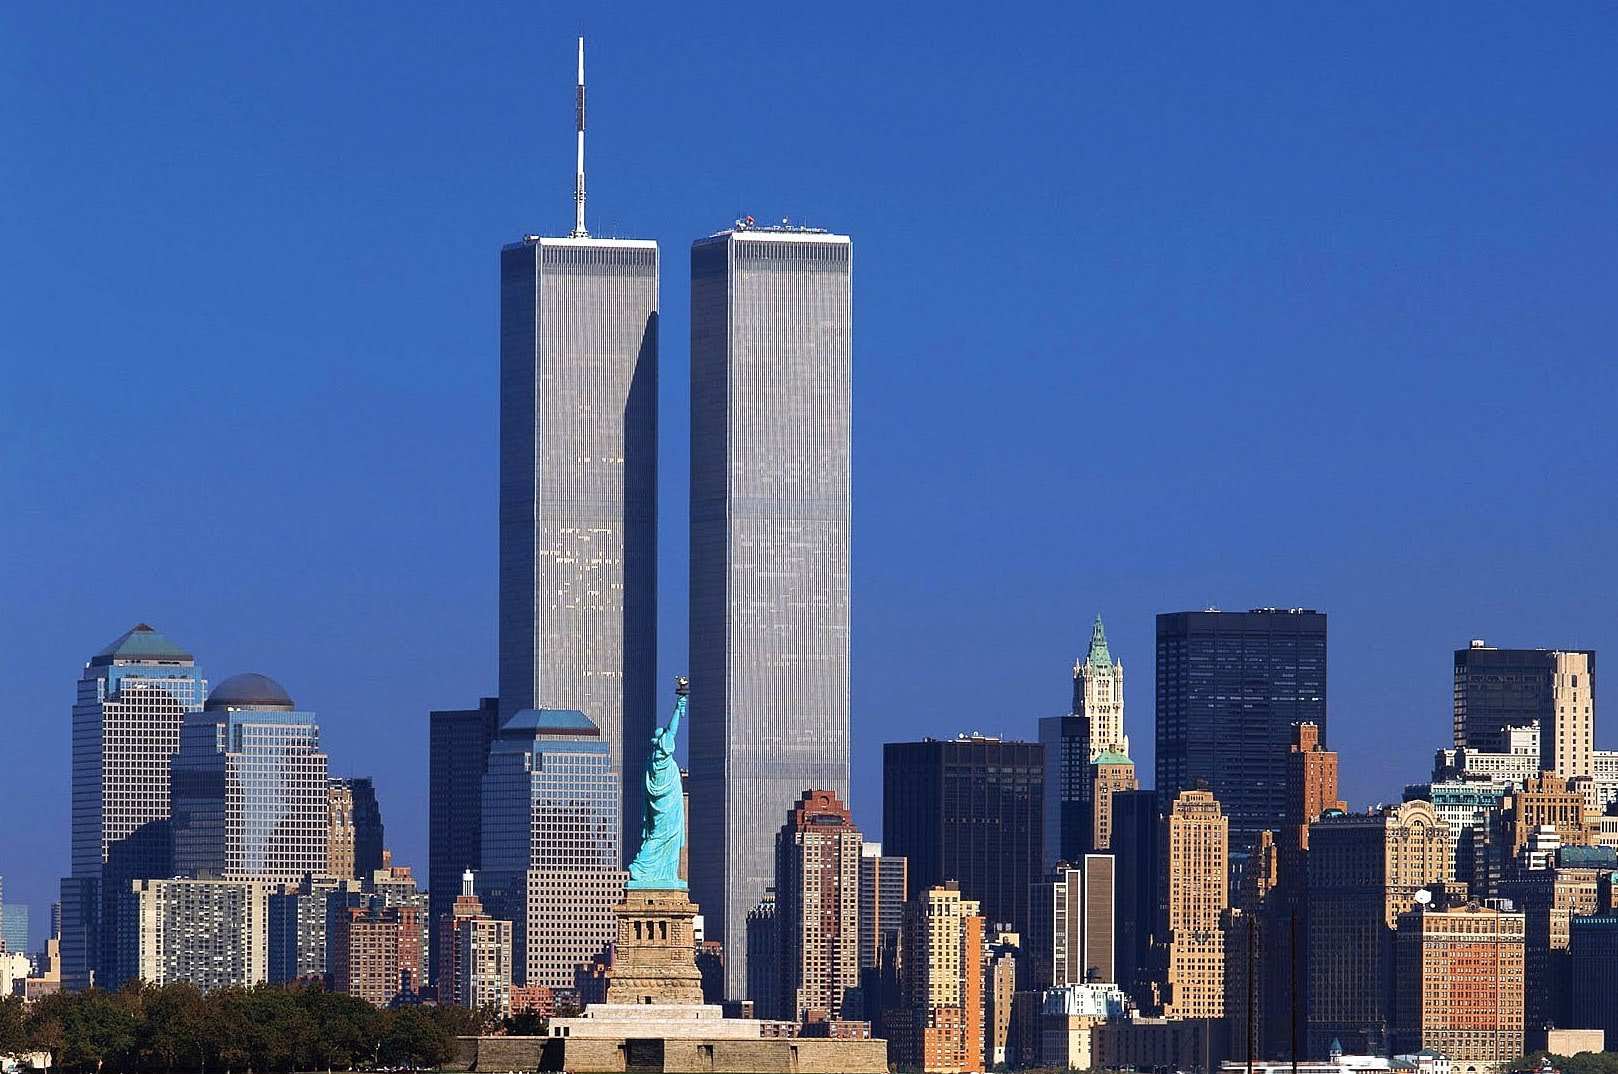 11 september 2001- Aanslagen Twin Towers